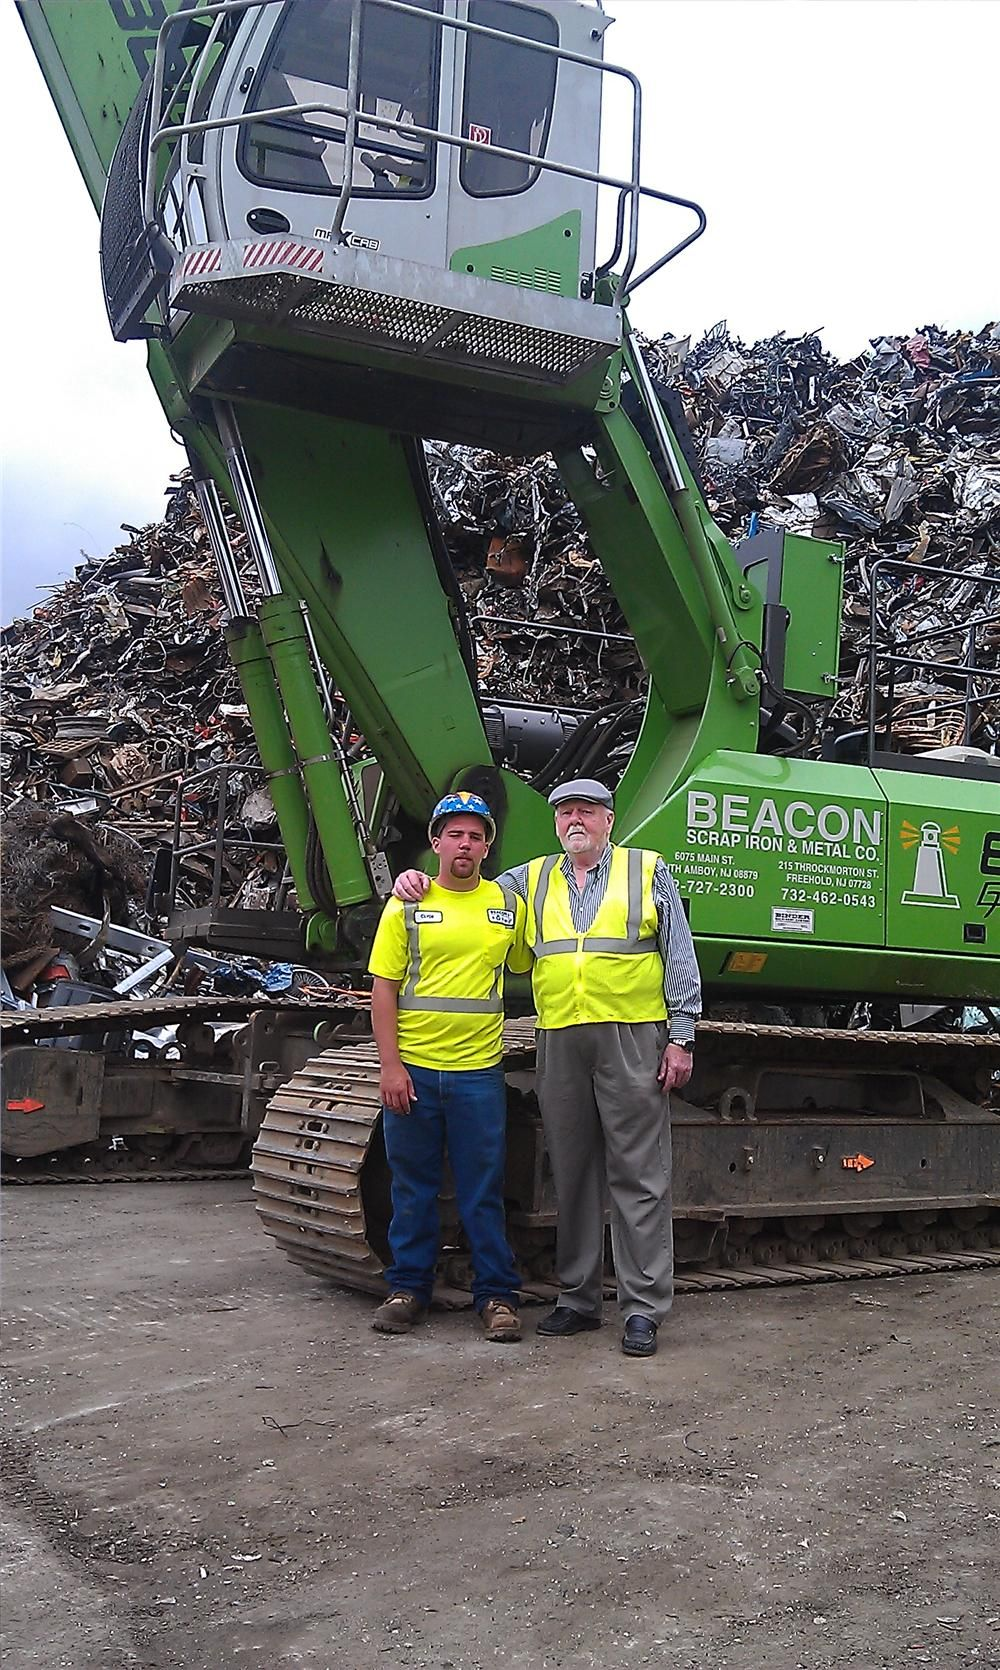 Representing the third generation of the family-owned Beacon Scrap Iron & Metal, Clyde Cameron III (L)  is joined by his grandfather, William Smith Sr., the founder of the company.